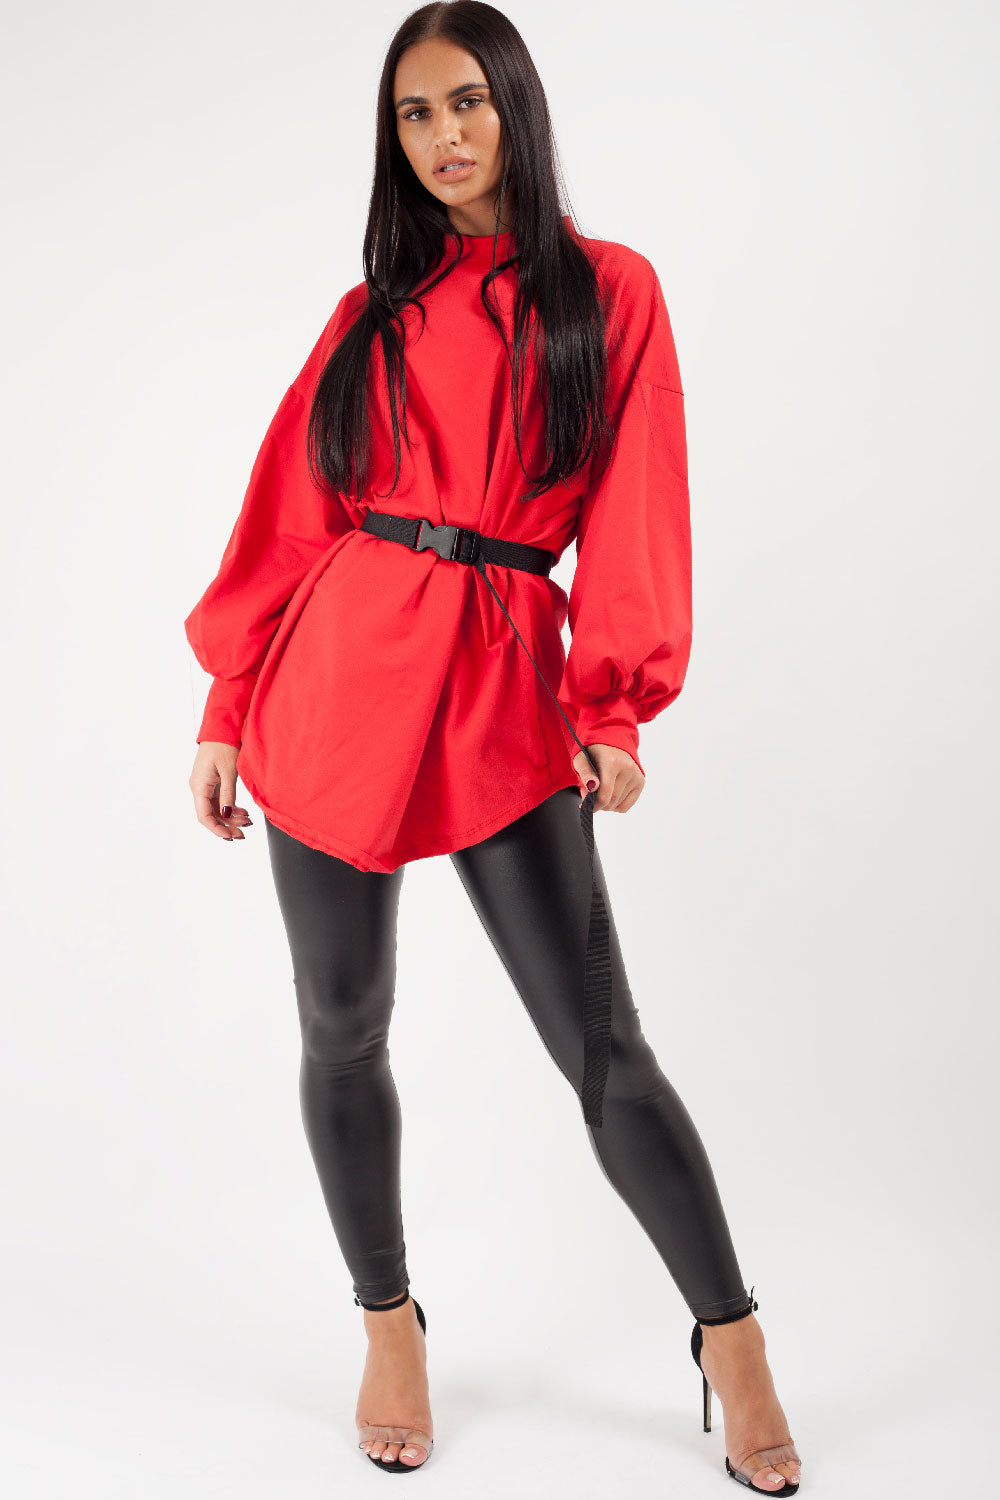 red belted oversized sweatshirt on sale uk